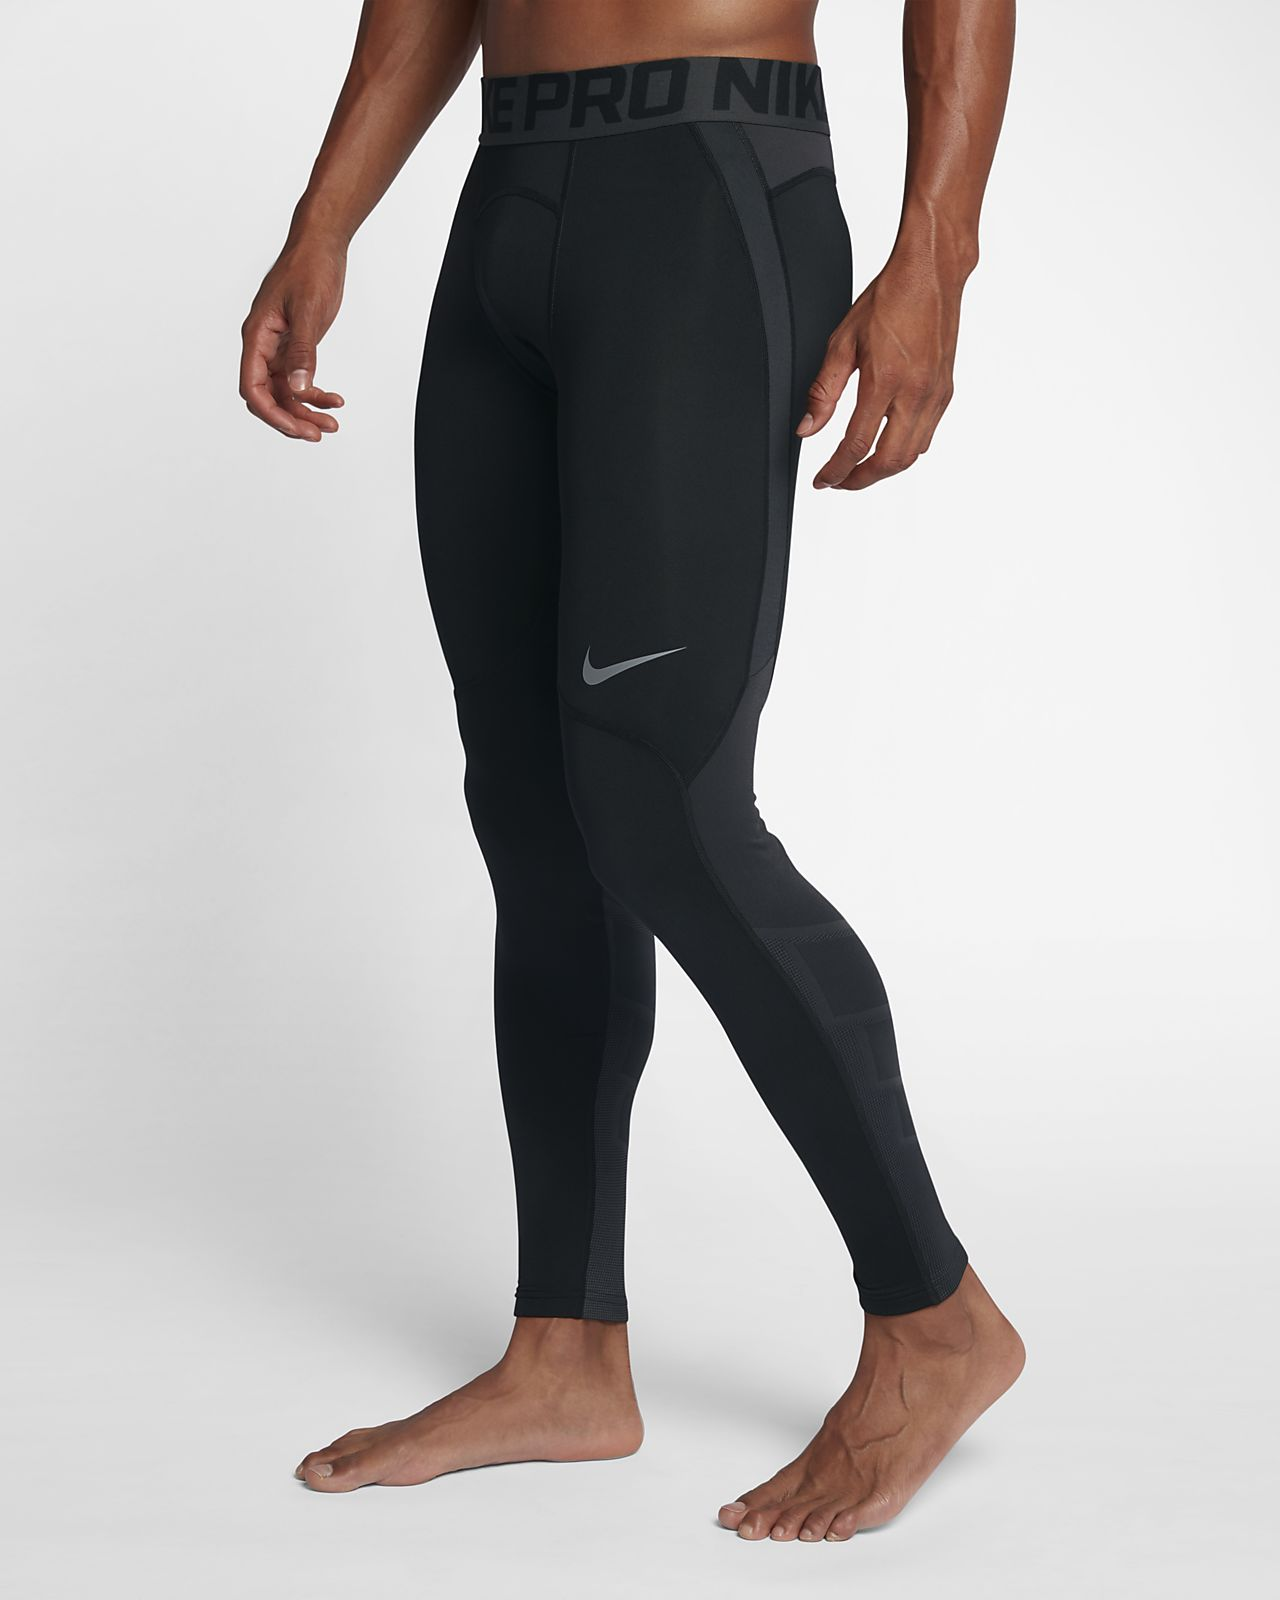 Nye Nike Pro HyperWarm Men's Tights. Nike.com ID HT-35